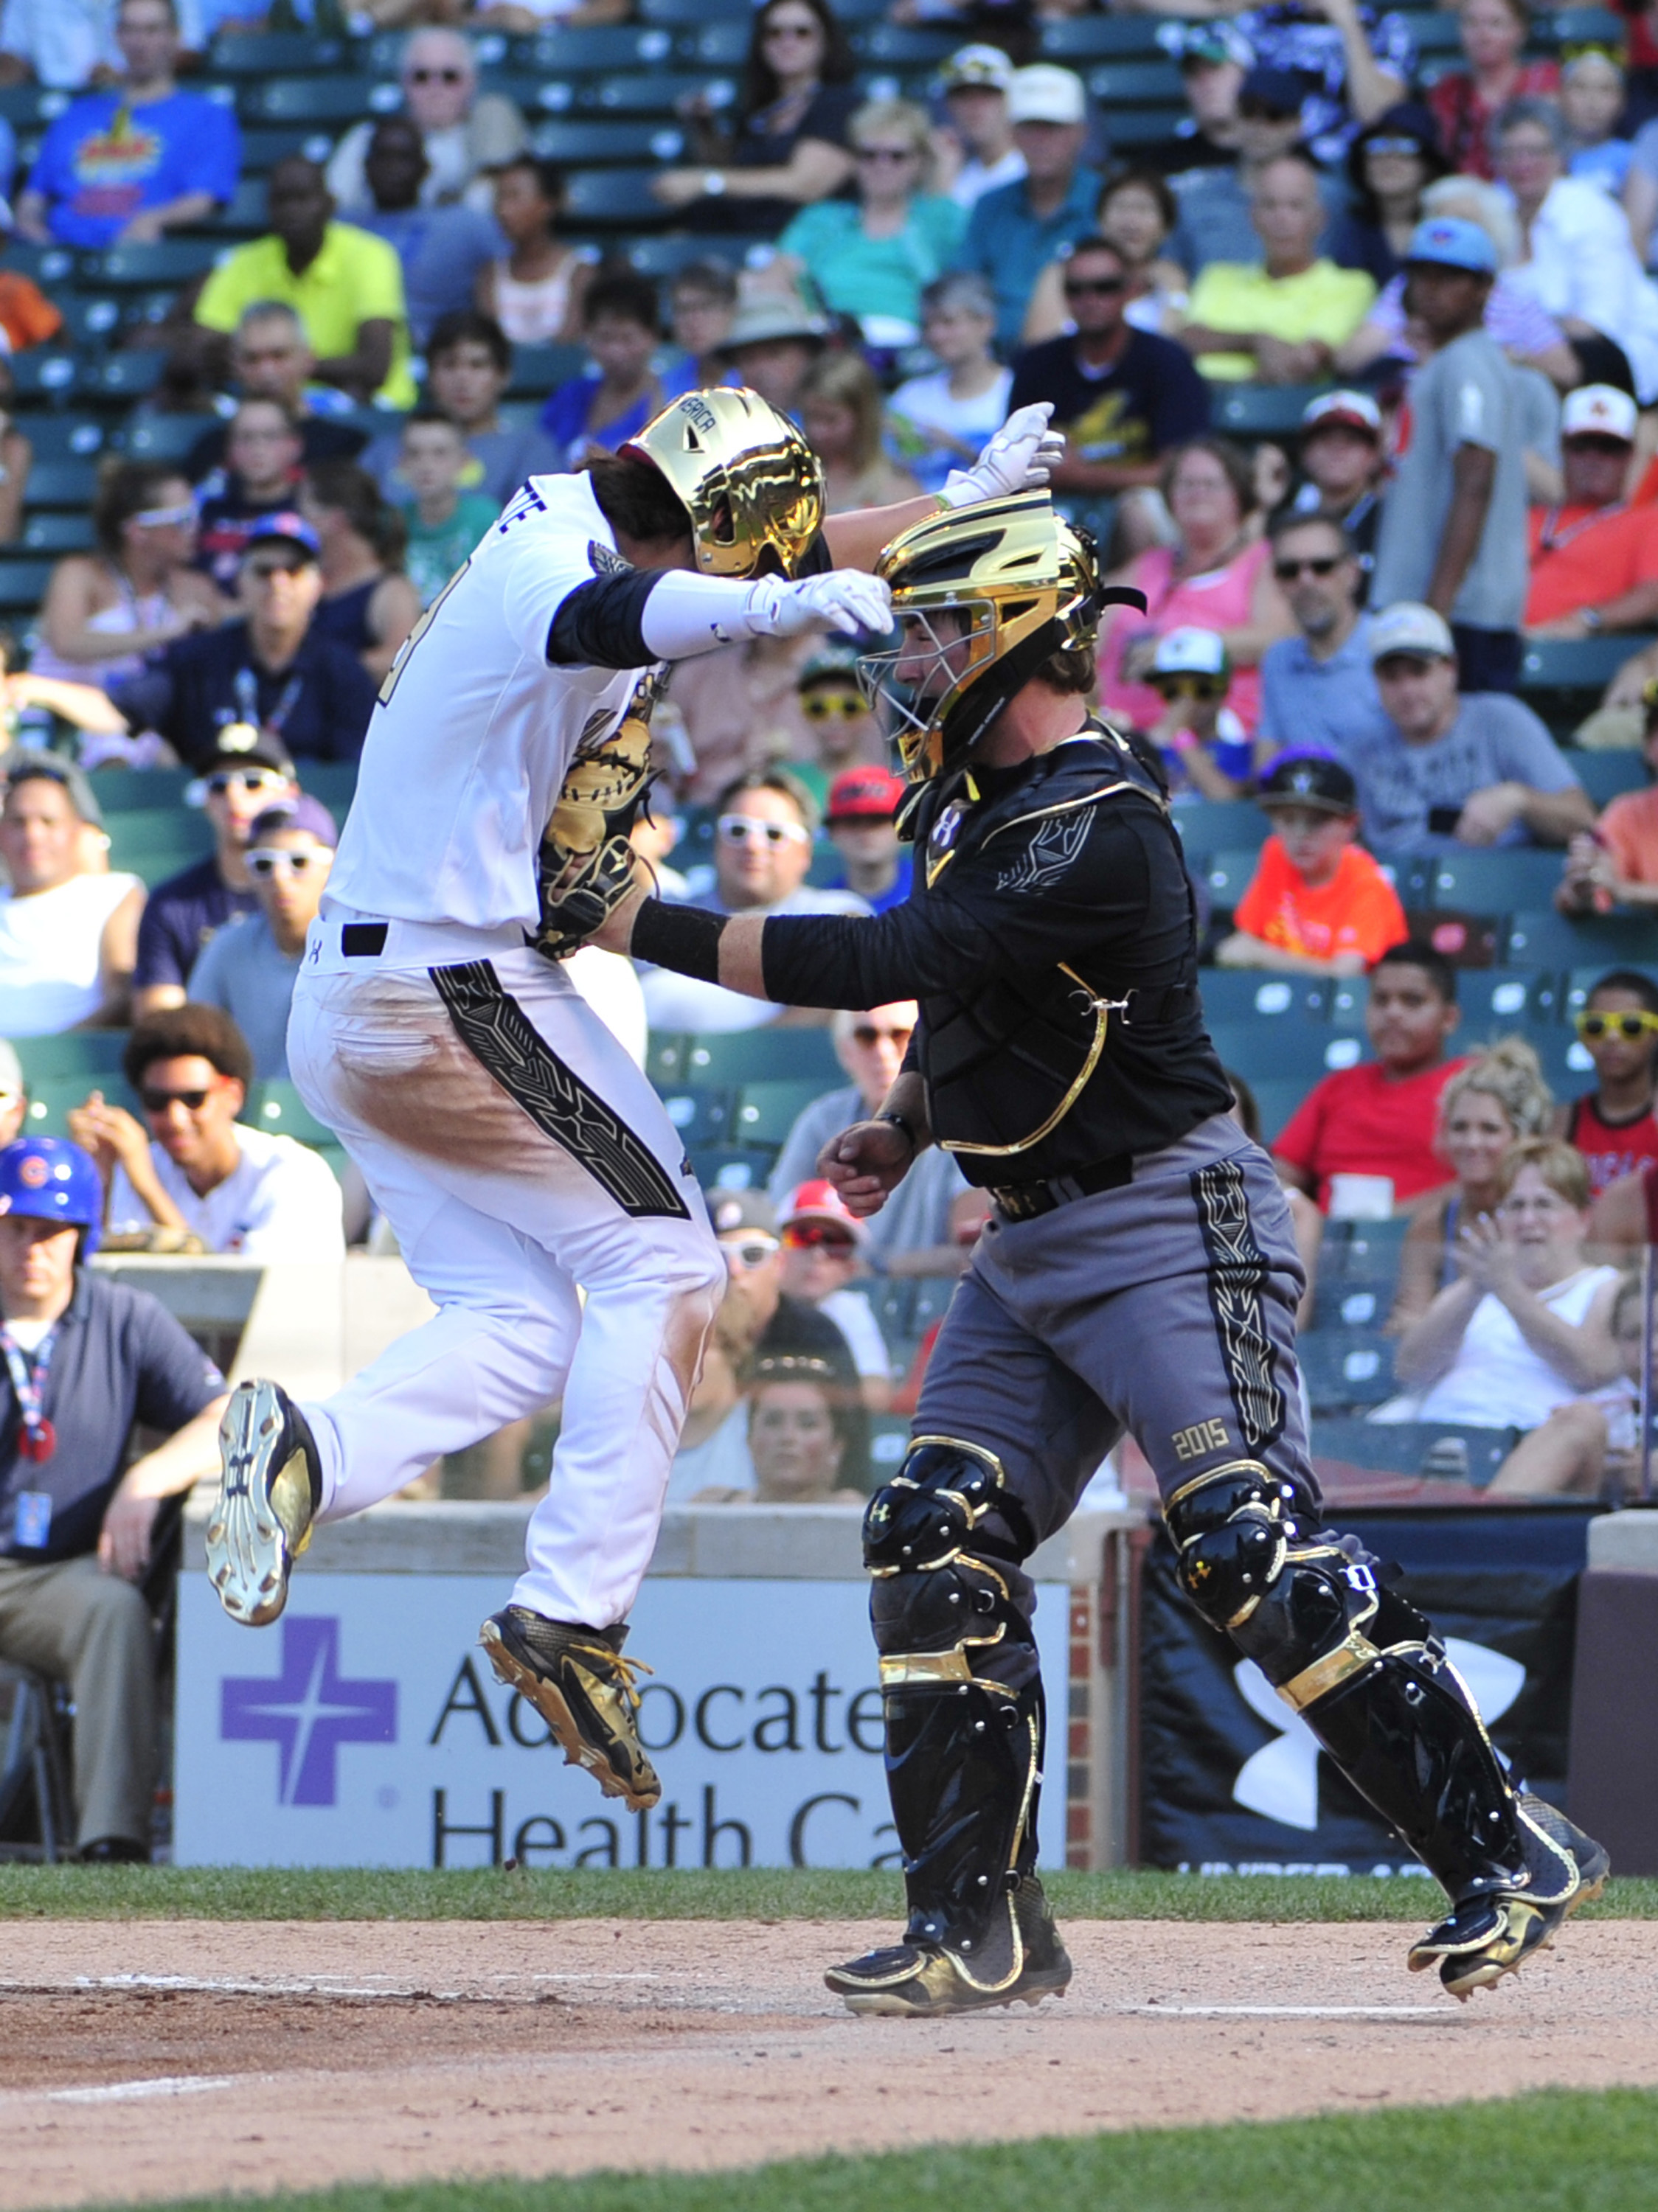 Catcher Thomas Dillard tags out Bo Bichette at the Under Armour All America Baseball game (Photo; David Banks, USA TODAY Sports)